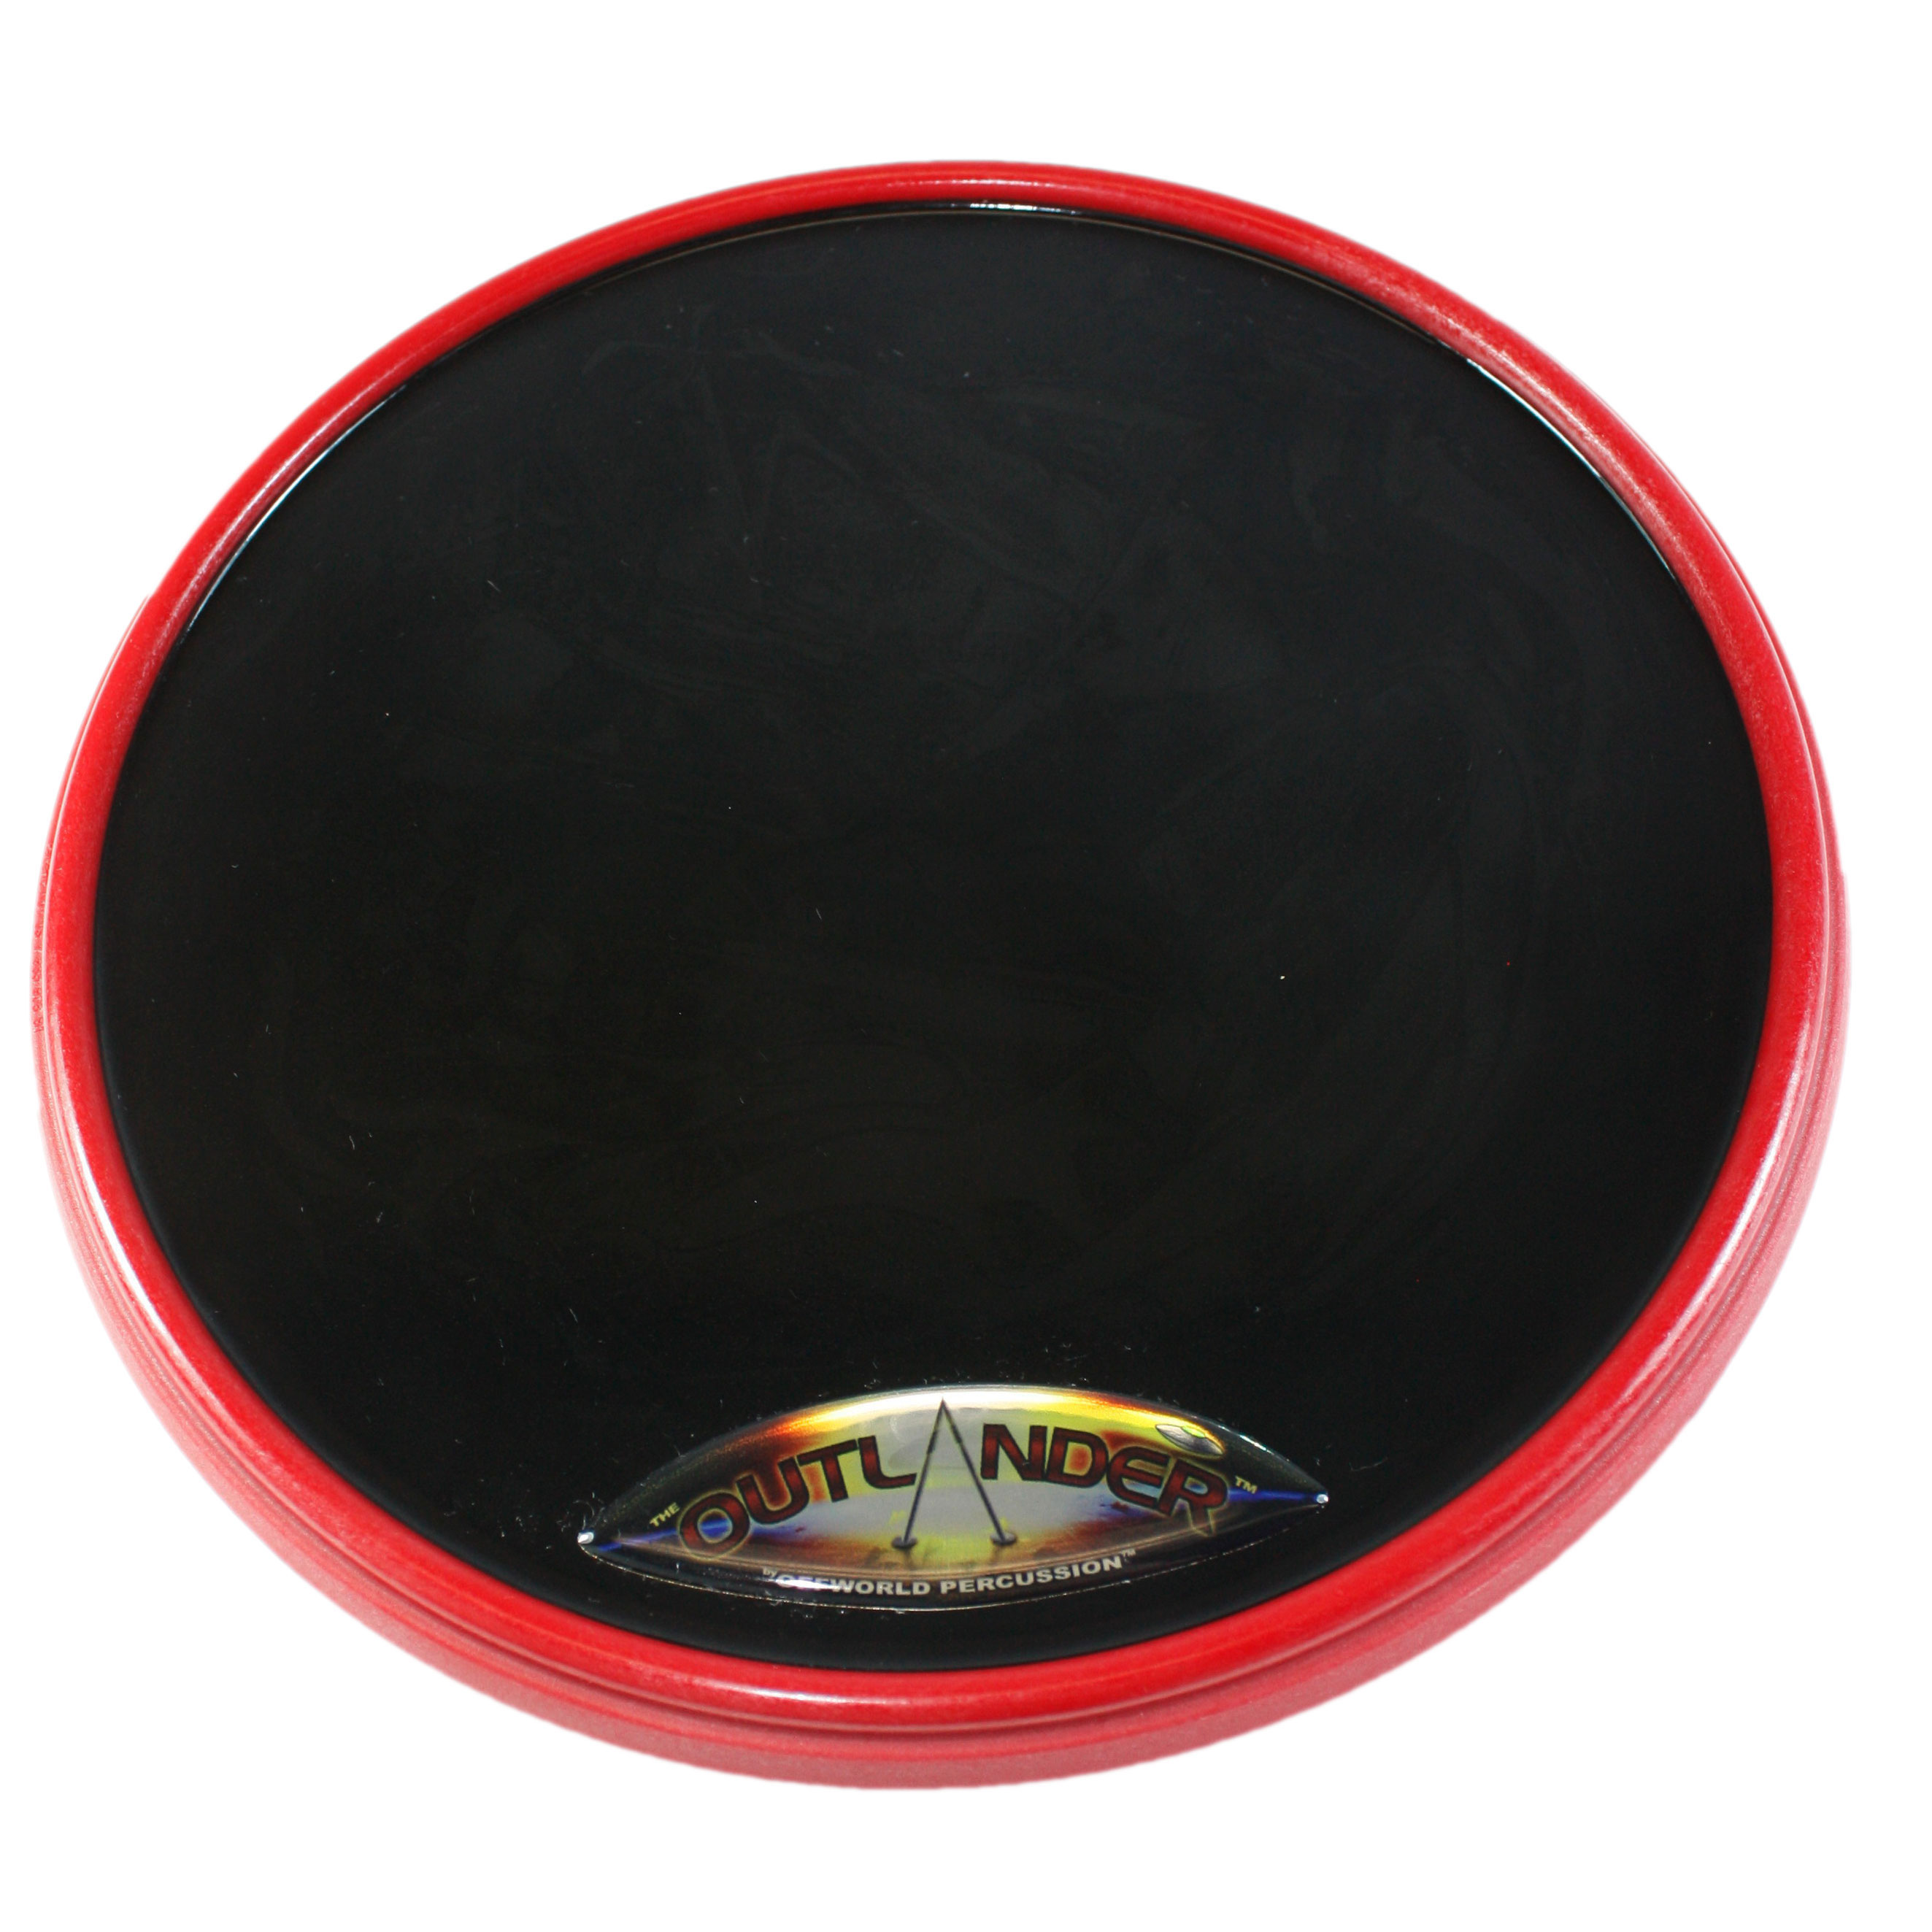 "Offworld Percussion 9.5"" Outlander Practice Pad"